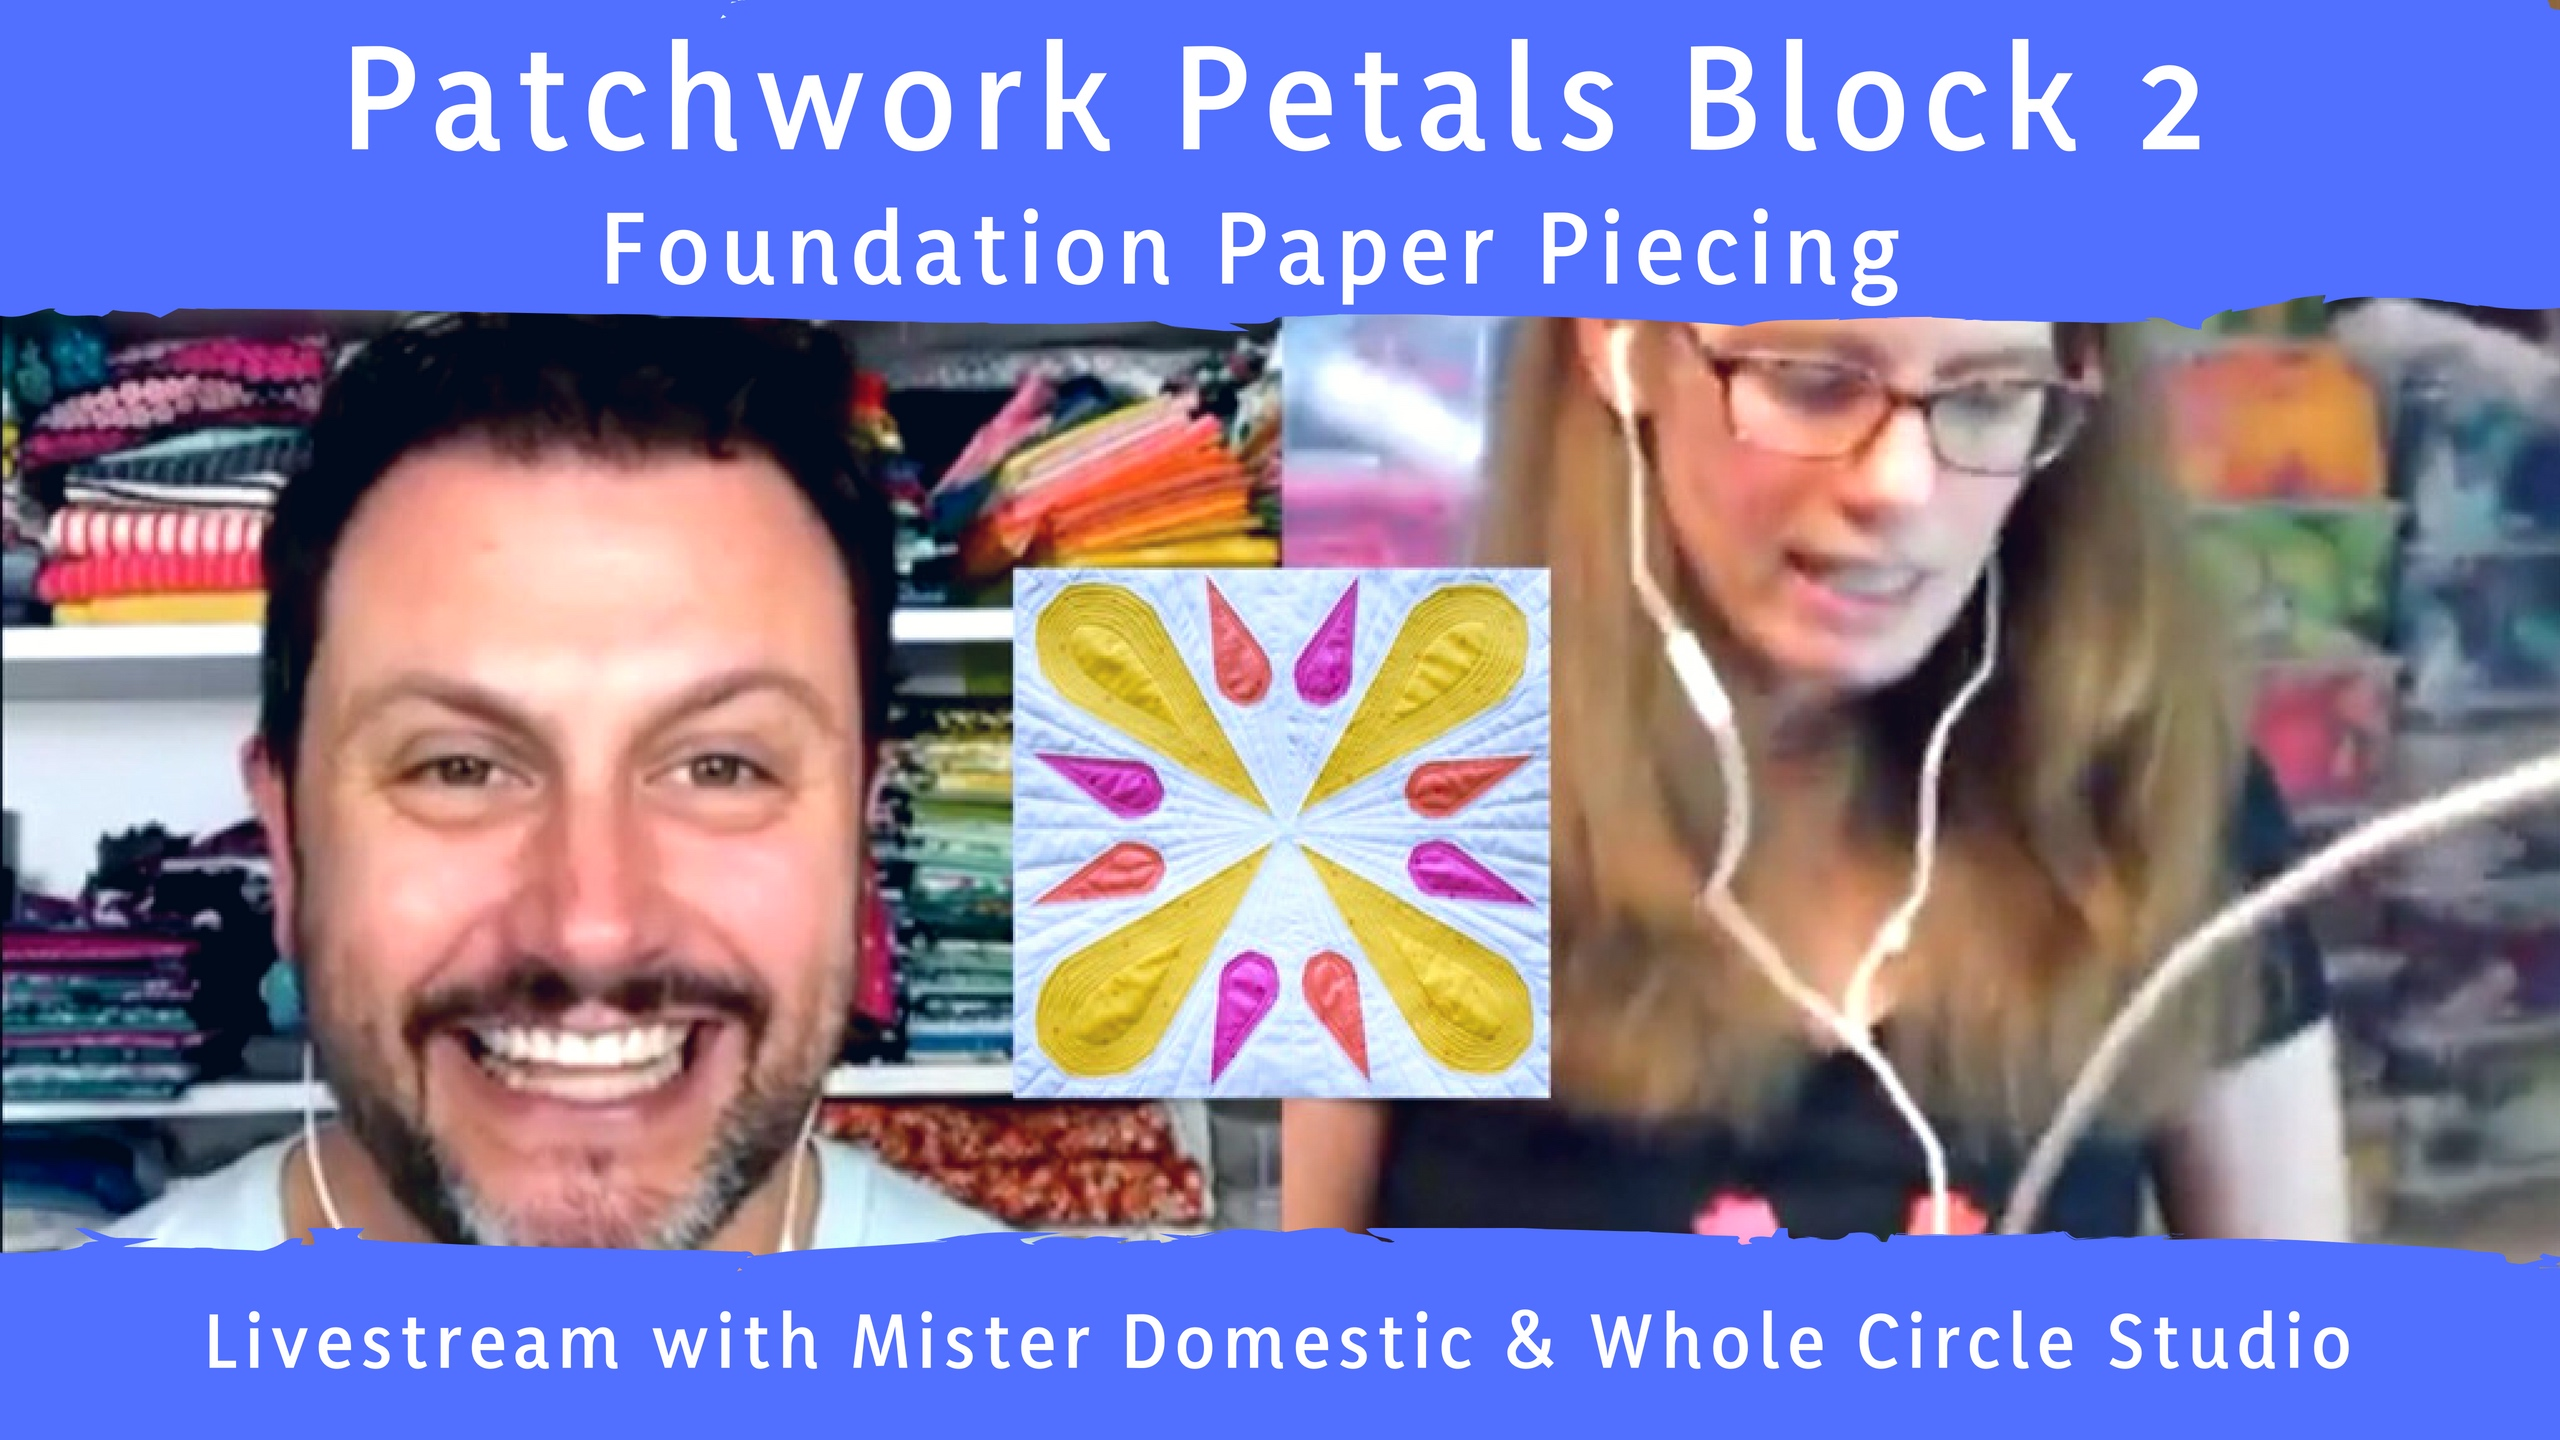 Patchwork Petals Block 1 copy.jpg